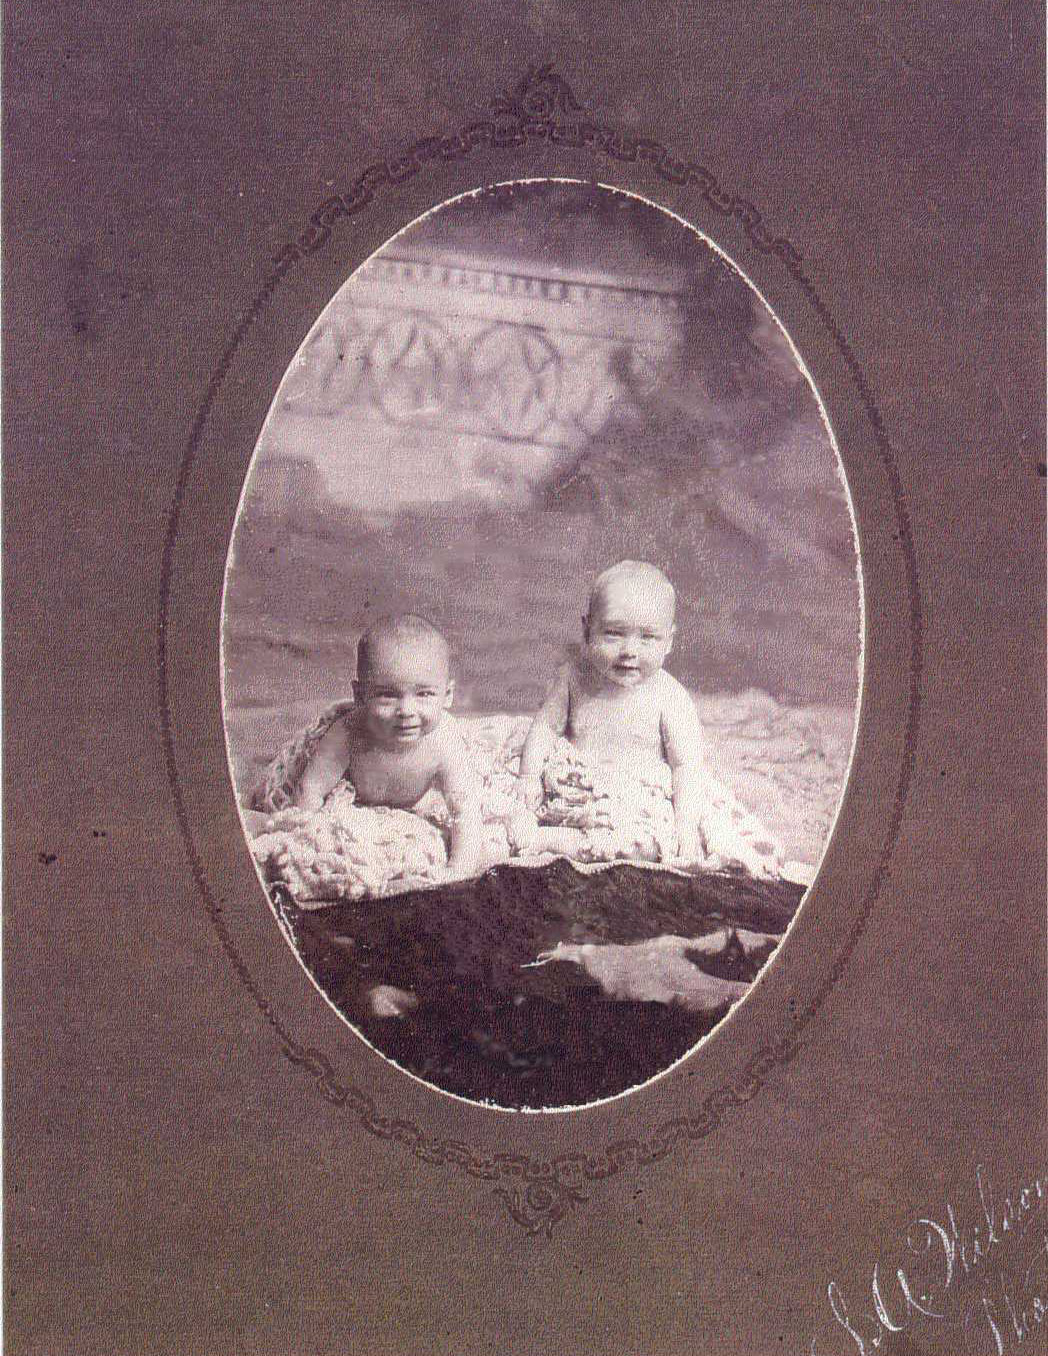 William Galbraith Brown & Orson Pratt Brown - August 1905